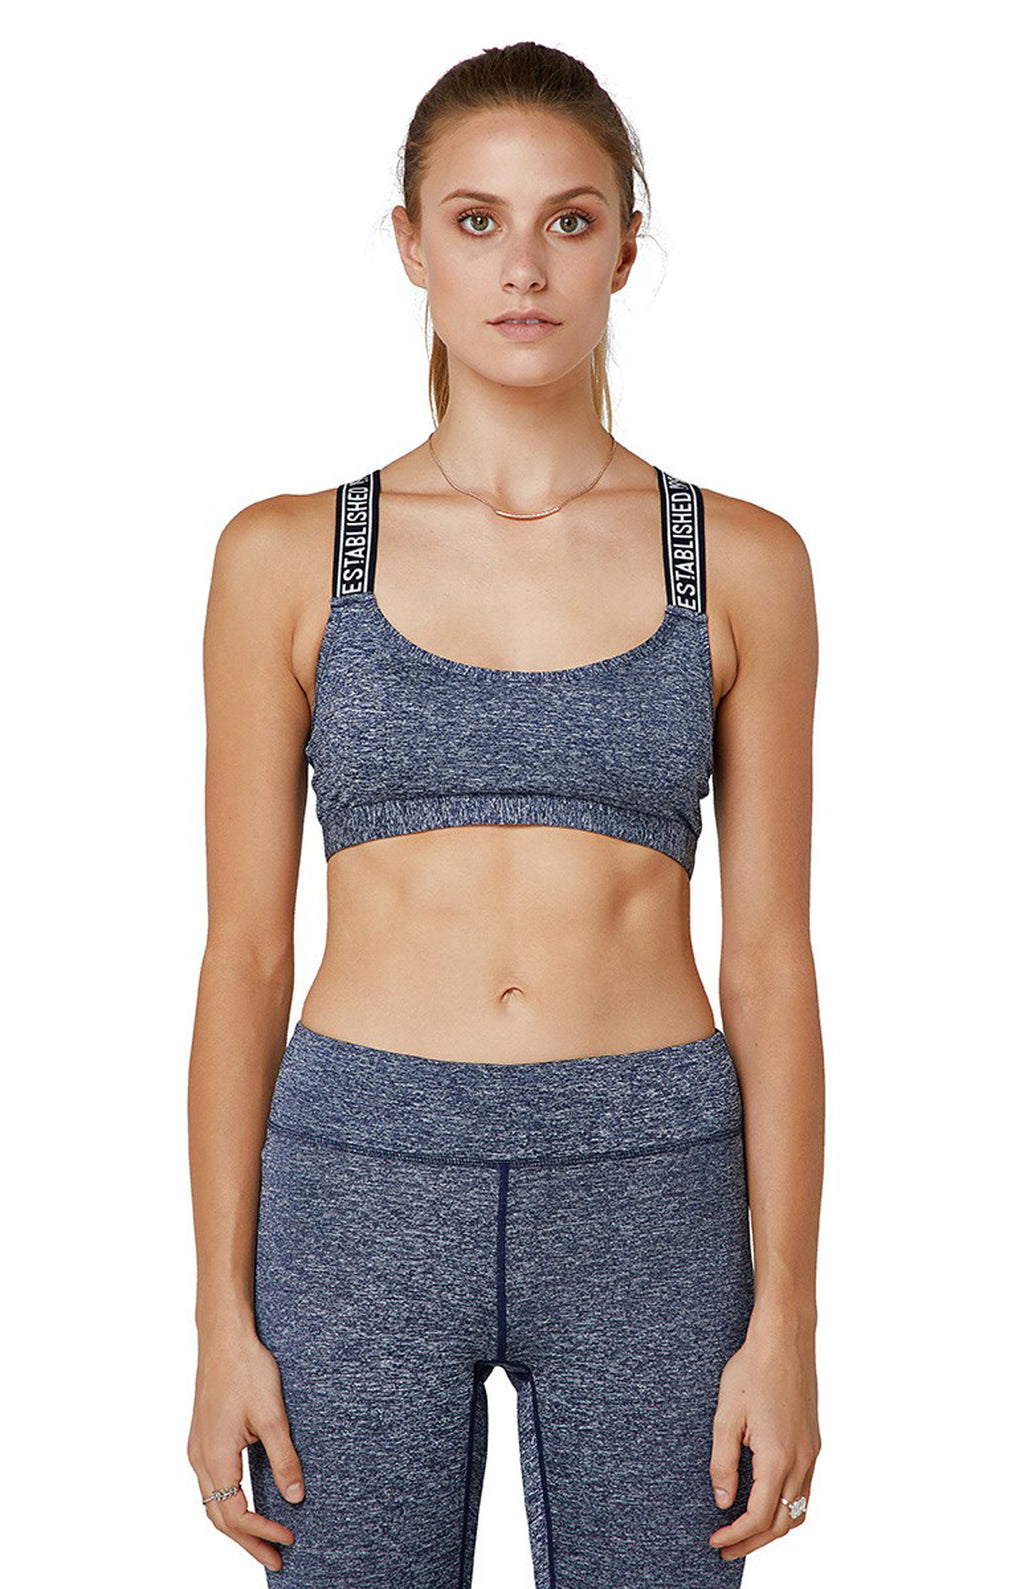 EST. Dash Crop Top